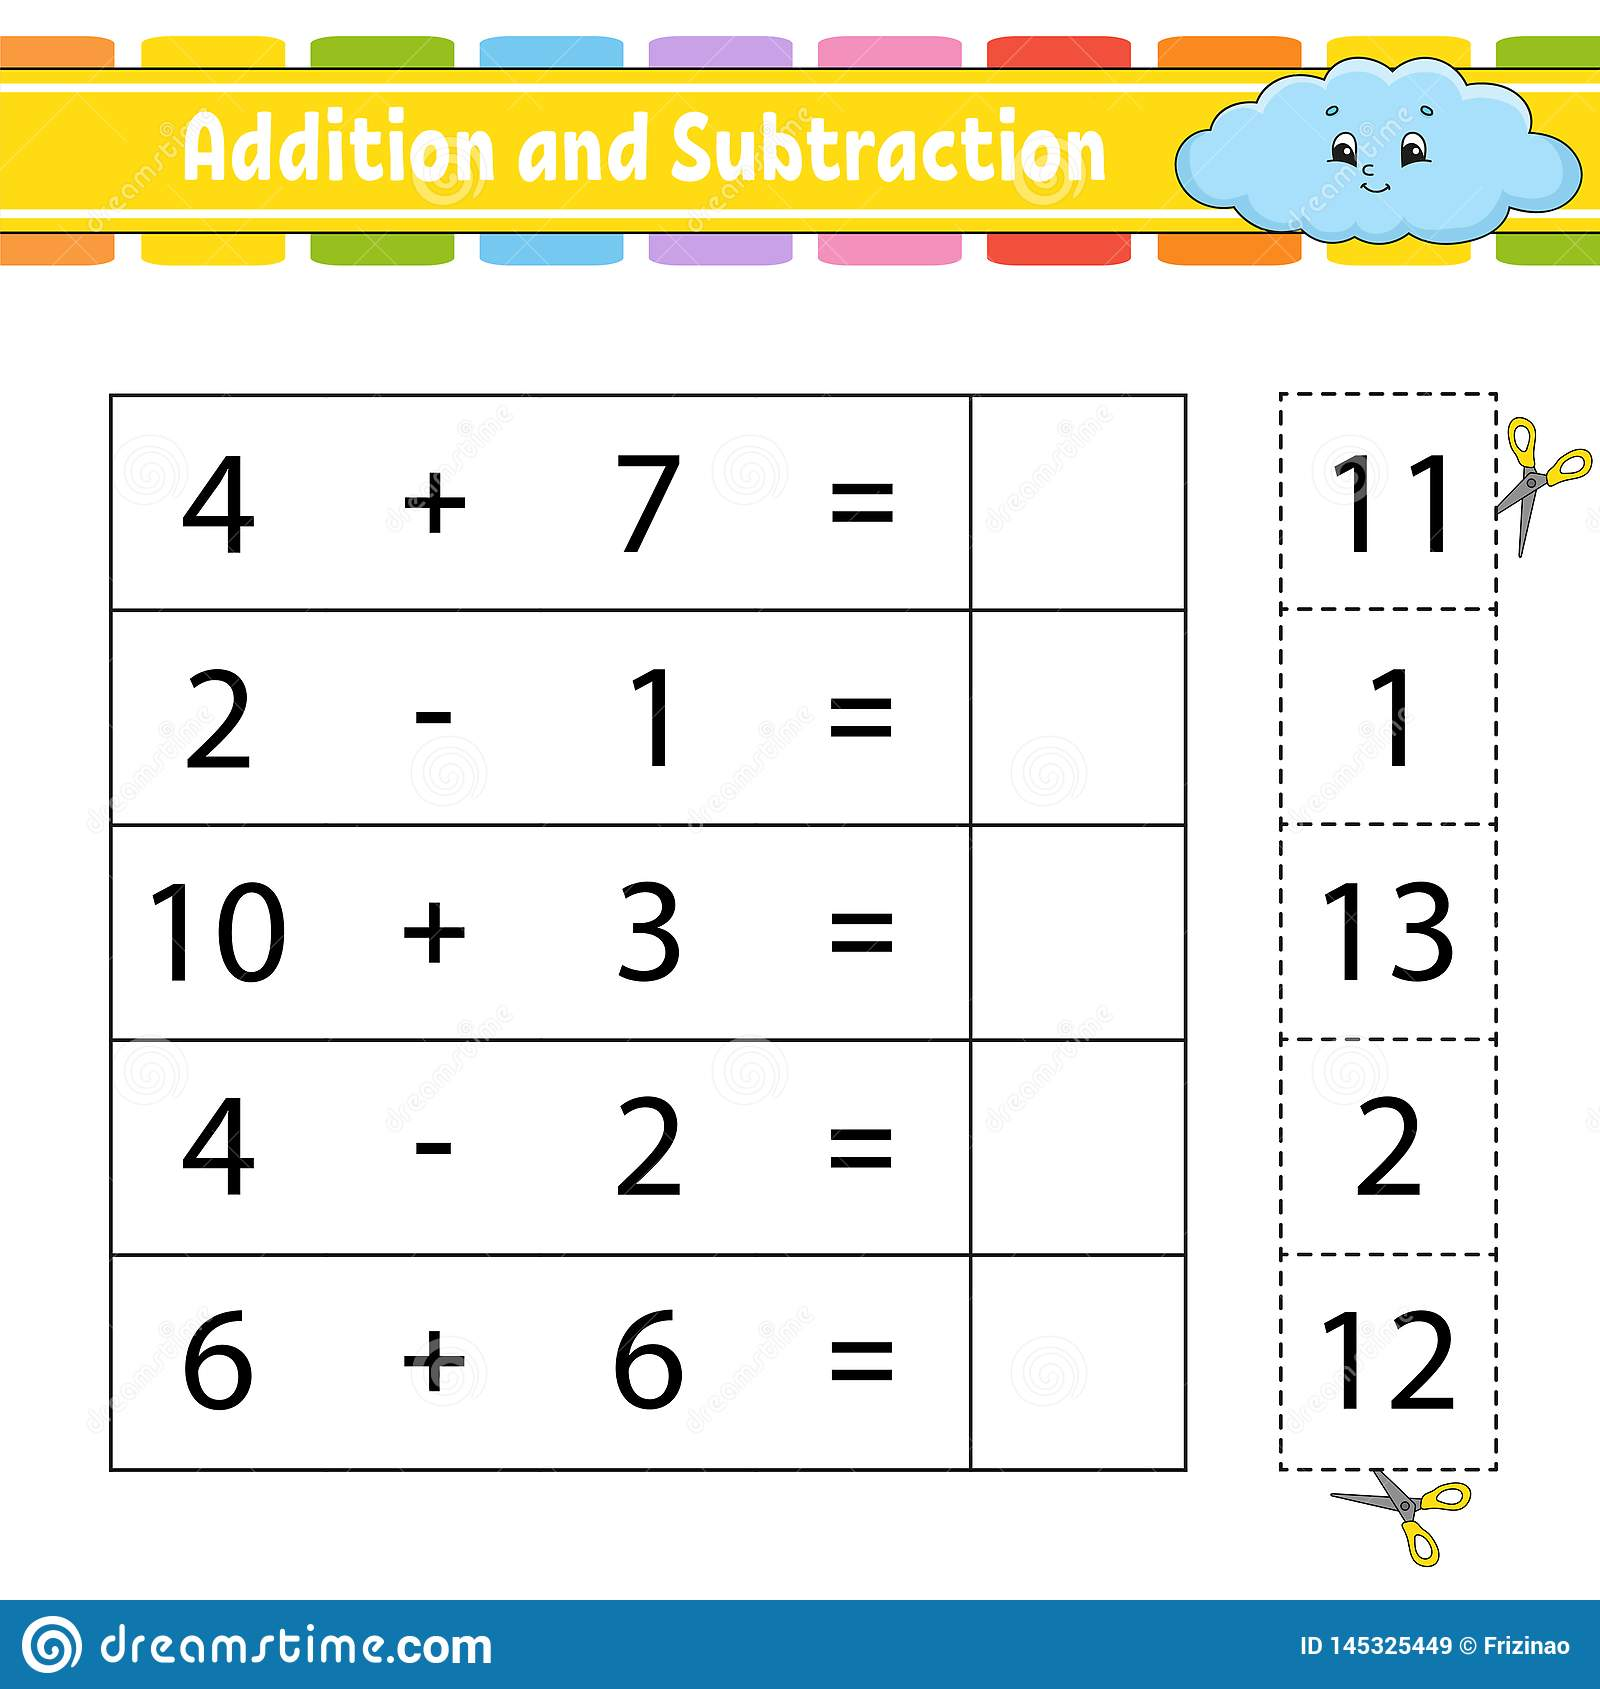 Addition And Subtraction Task For Kids Education